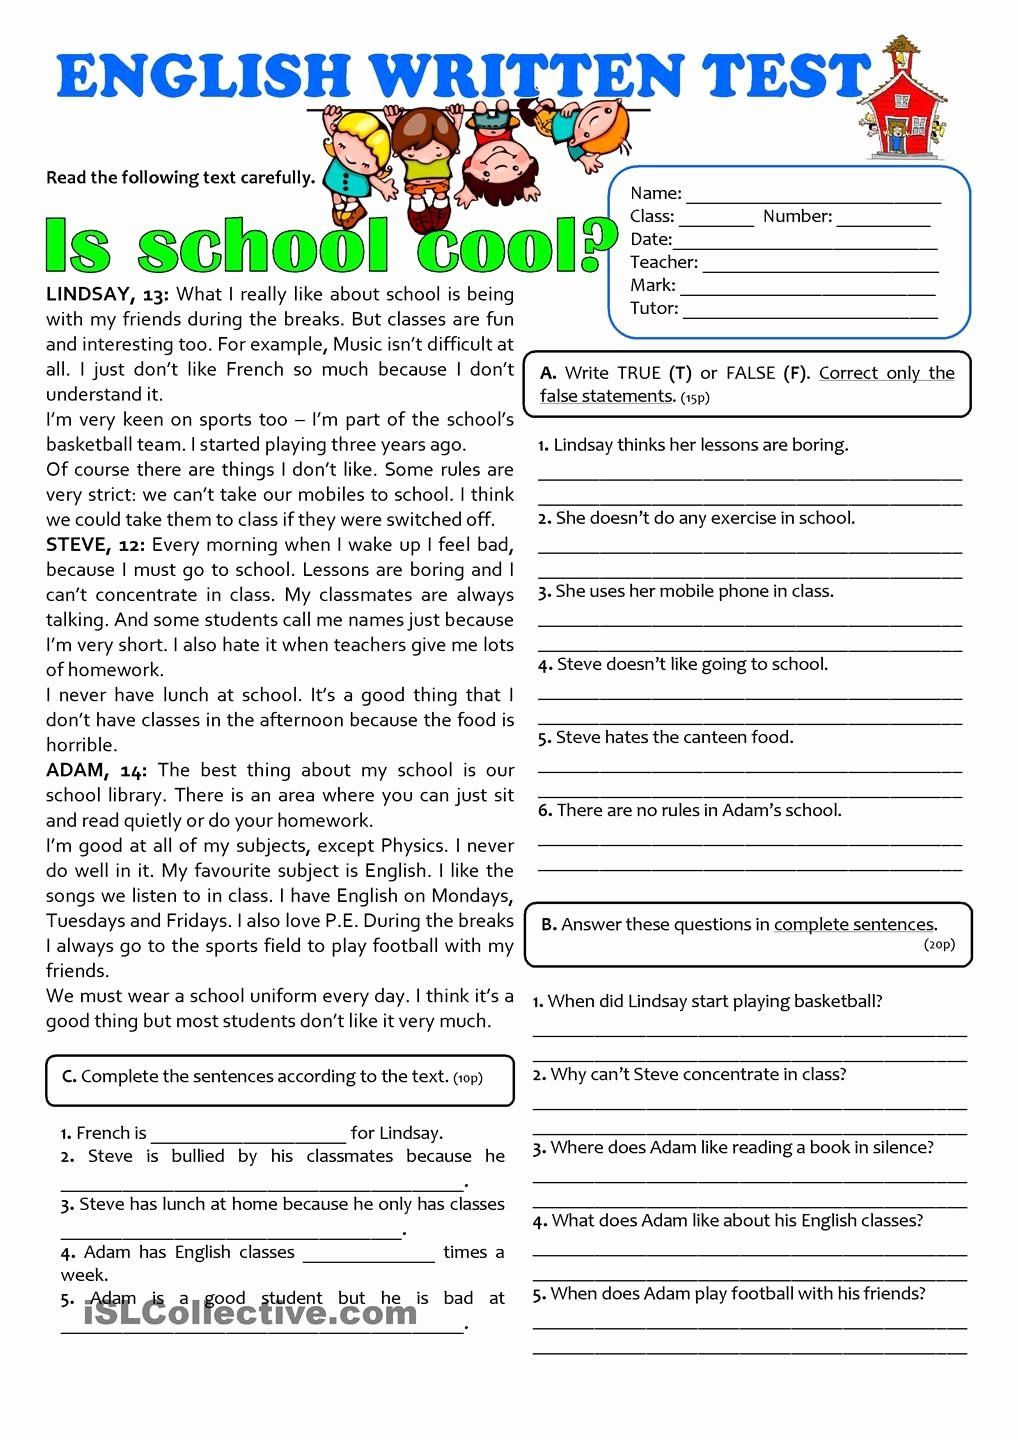 Free 7th Grade Reading Worksheets Printable is School Cool 7th Grade Test